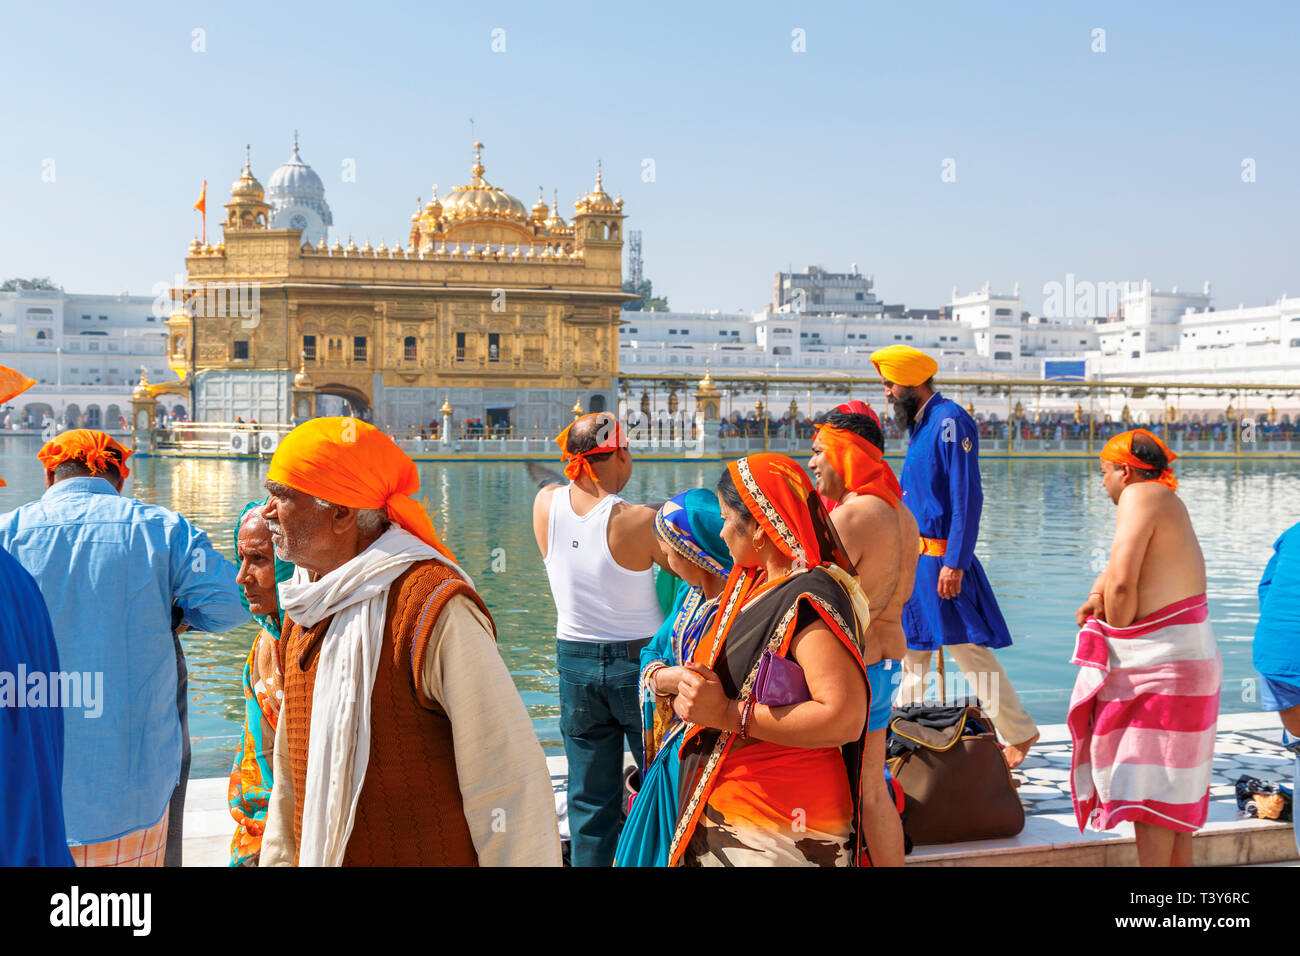 Local Indian Sikh people at the pool of the Golden Temple of Amritsar, the holiest Gurdwara and pilgrimage site of Sikhism, Amritsar, Punjab, India - Stock Image